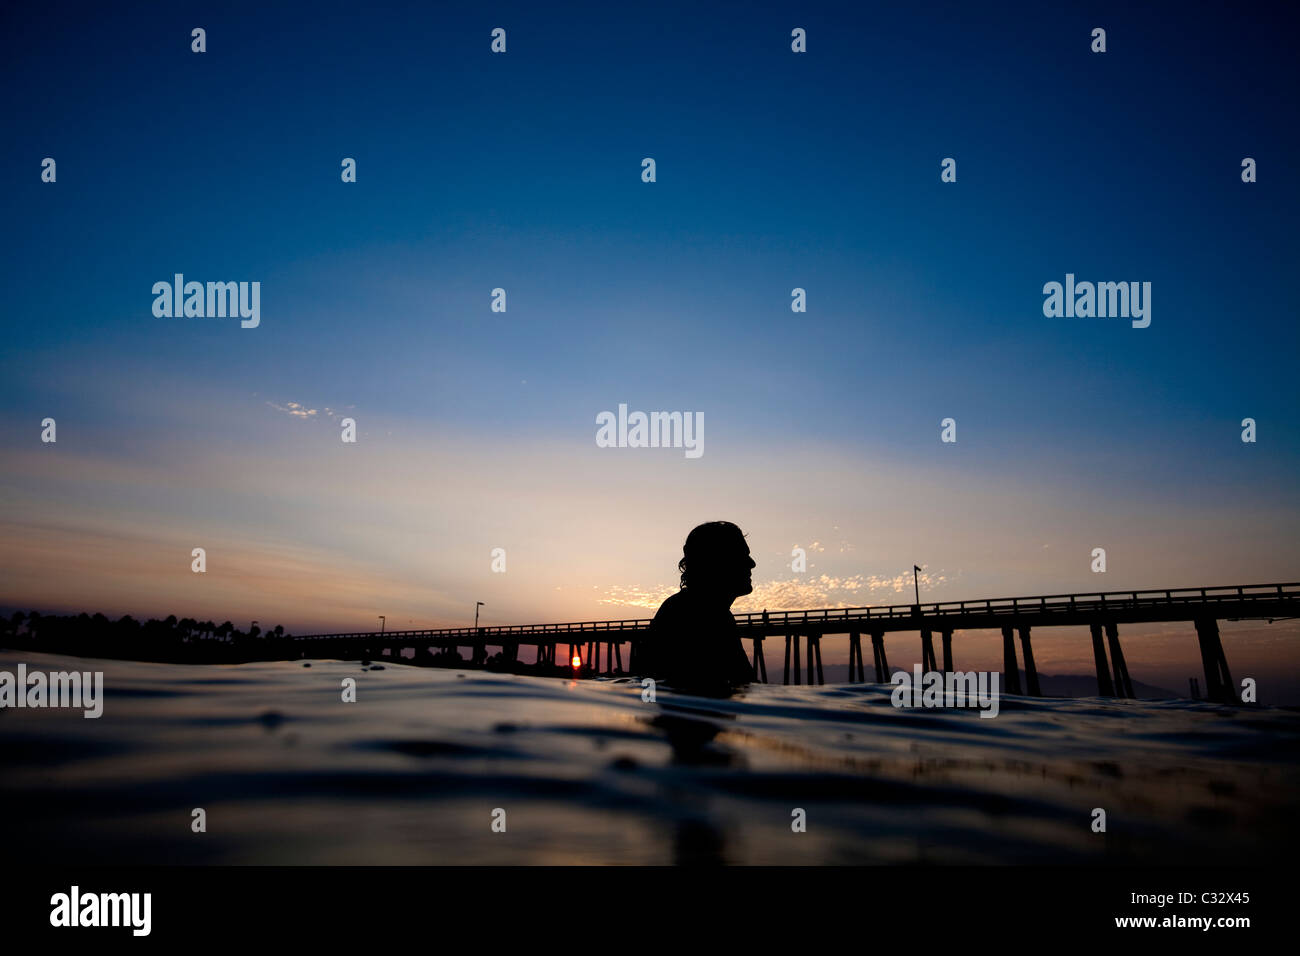 A male surfer watches the sunrise at Port Hueneme beach in Oxnard, California. - Stock Image